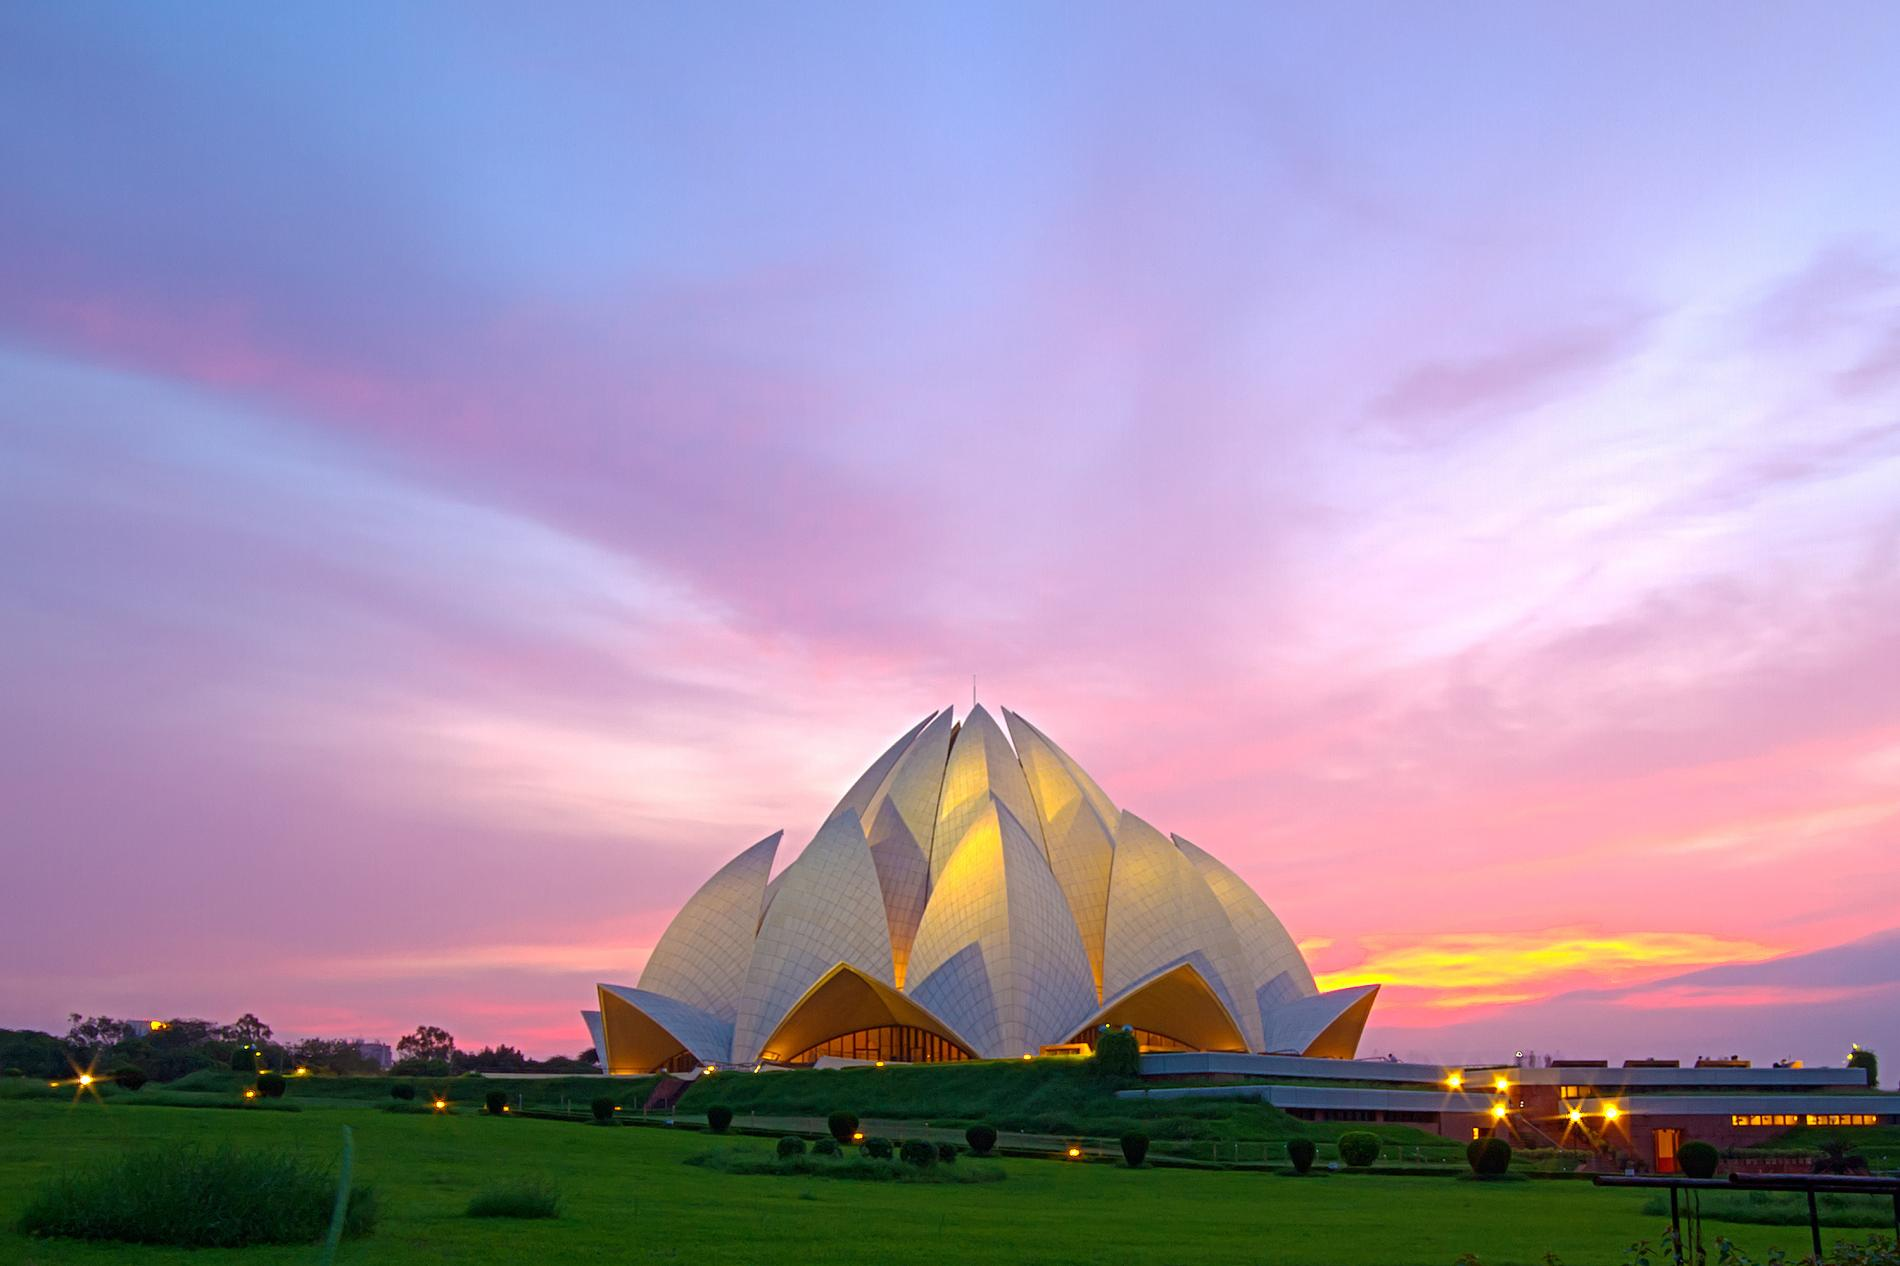 lotus-temple-delhi-india.adapt.1900.1.jpg